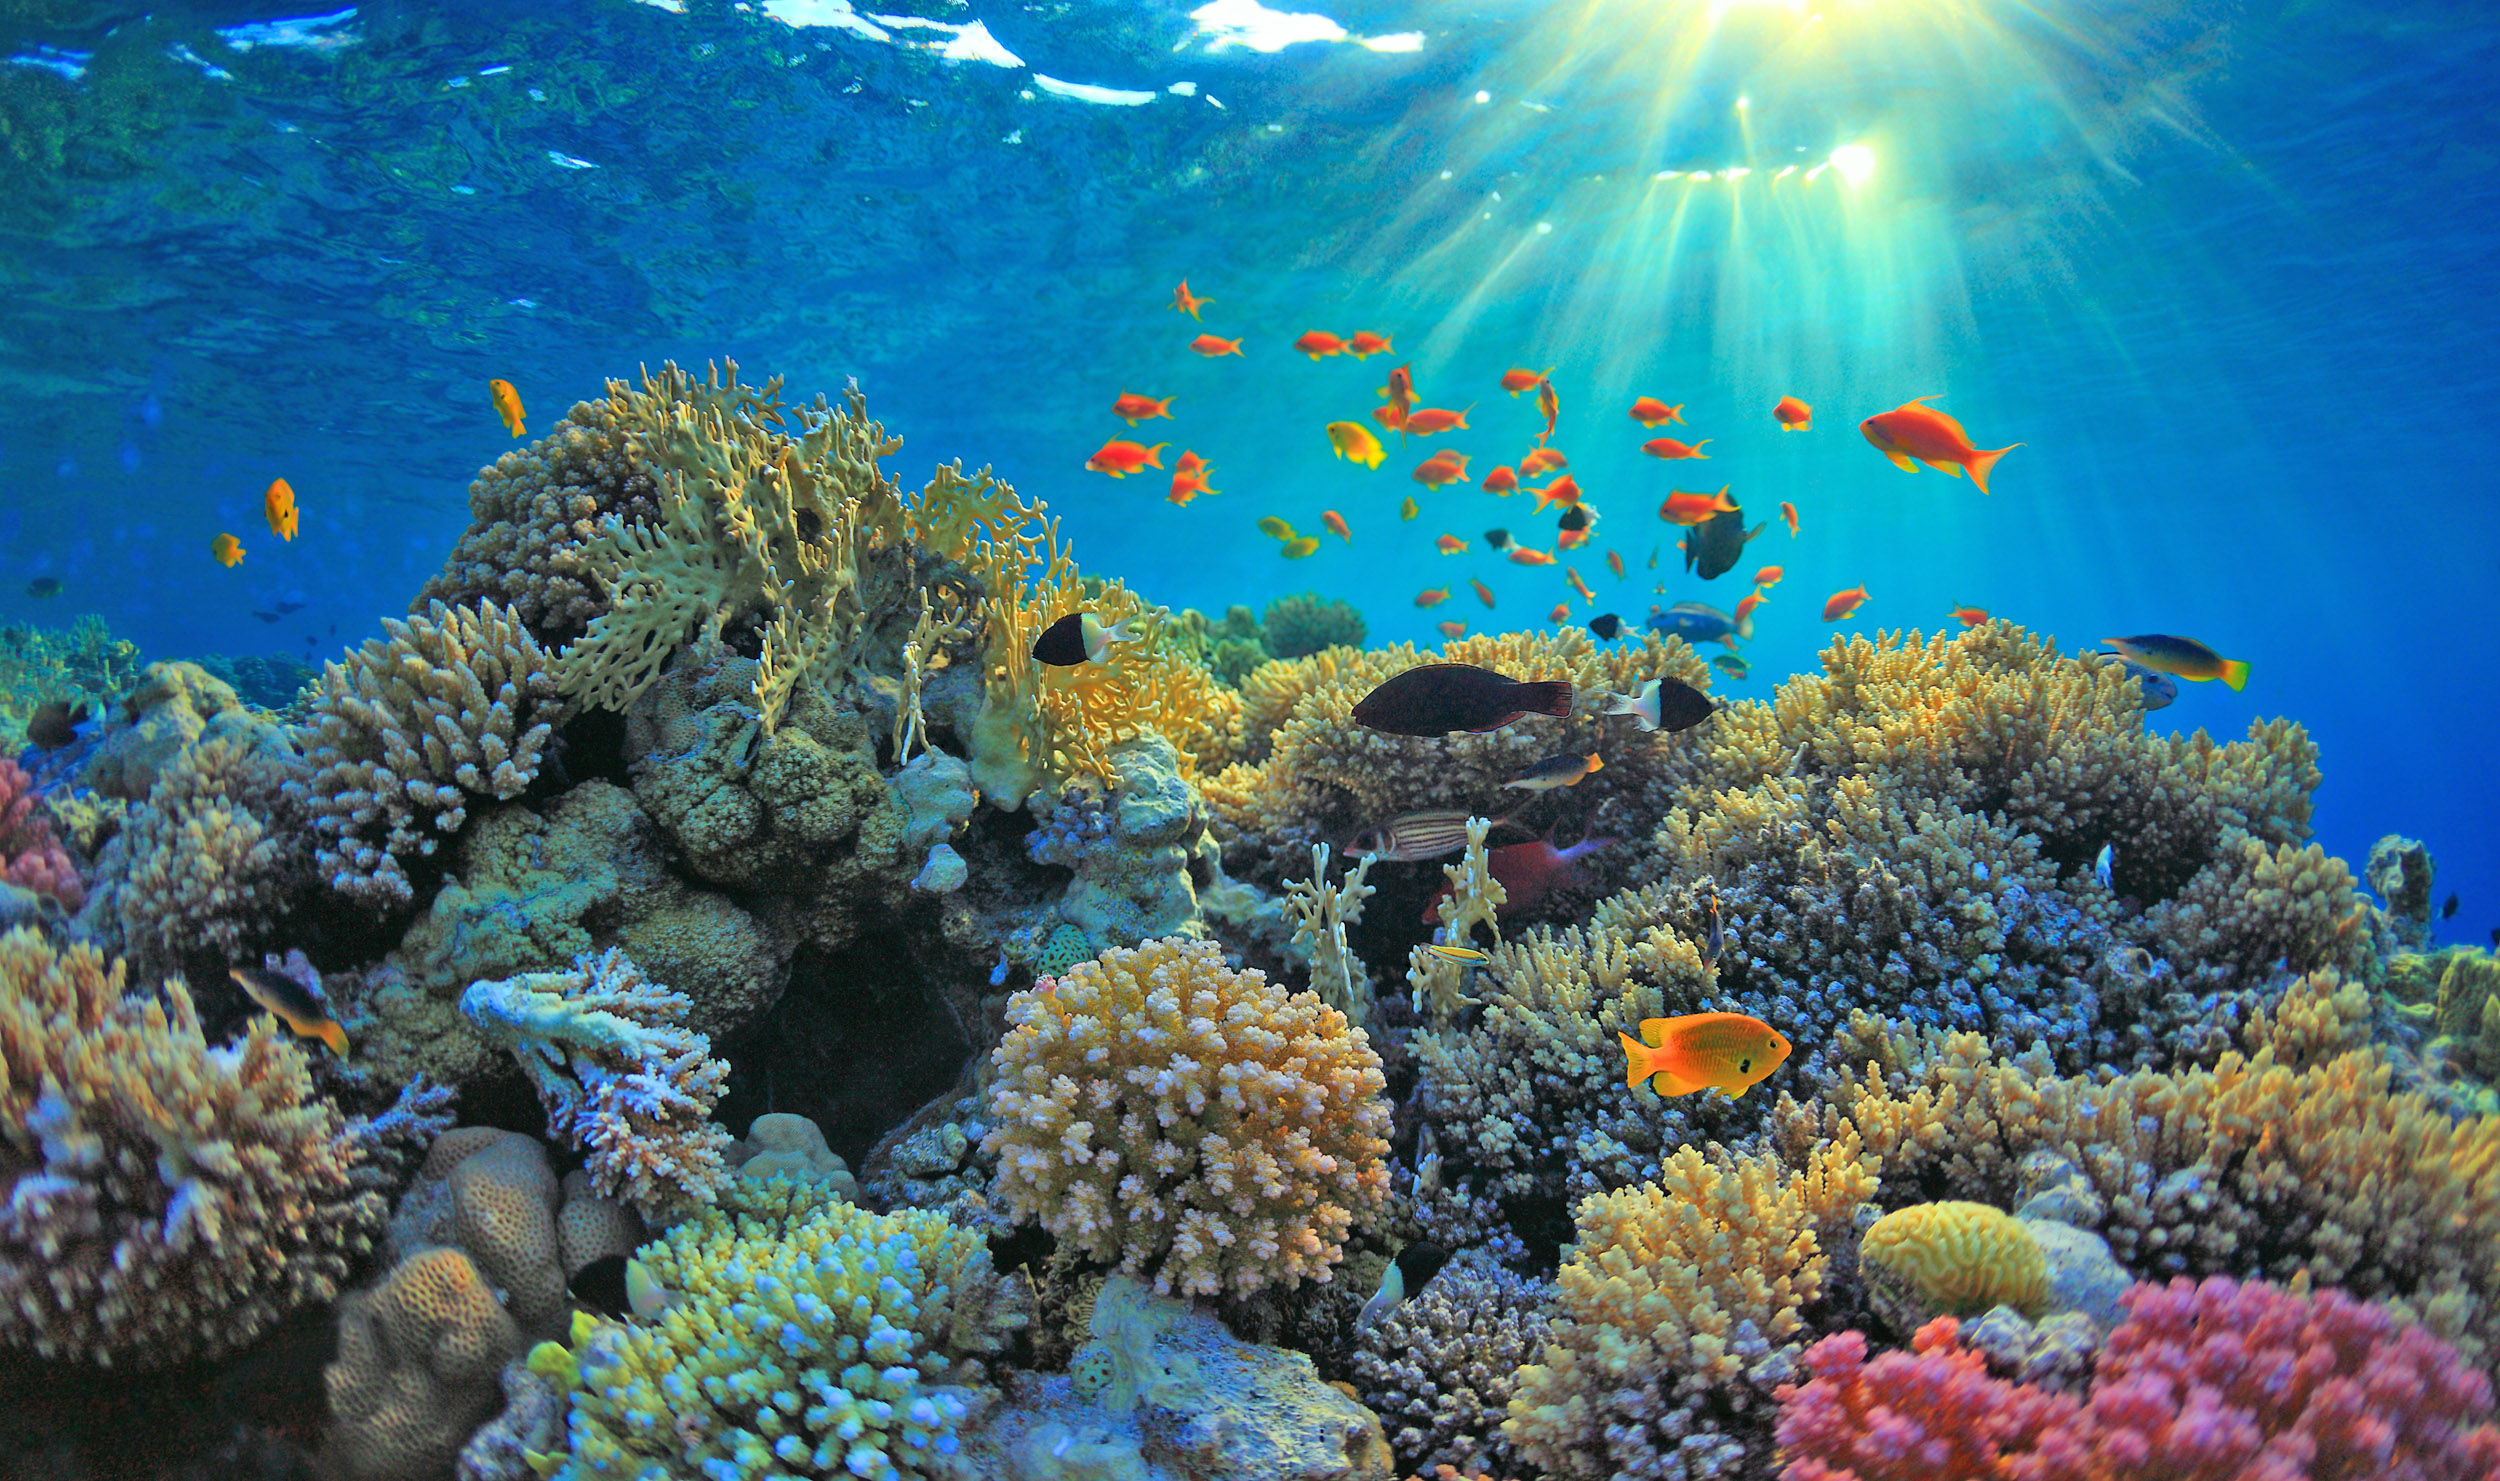 The CORAL project: A new view of coral reefs